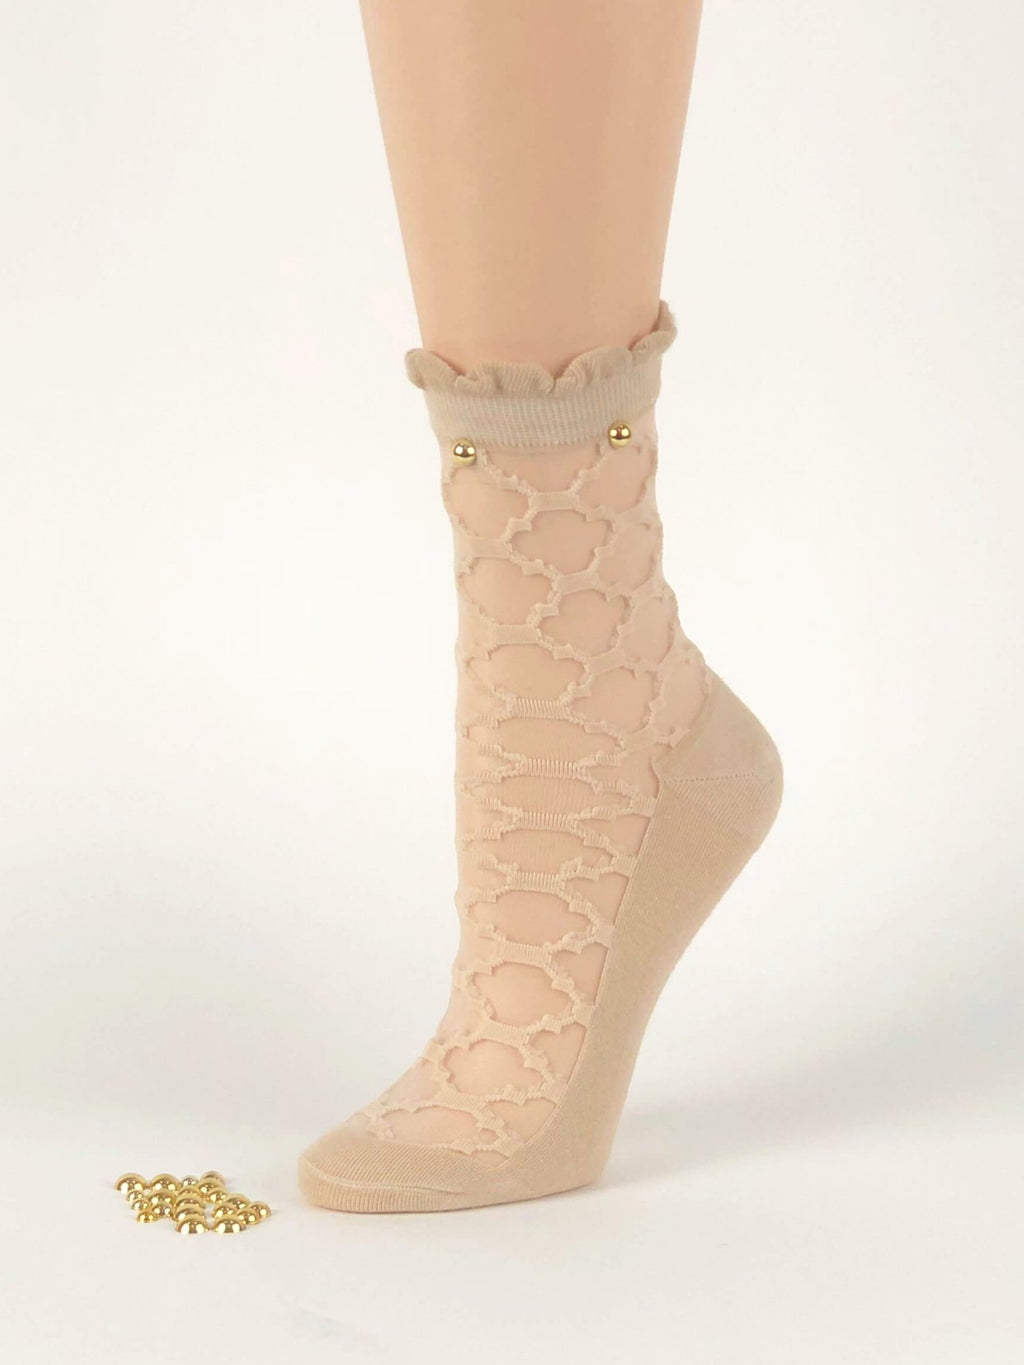 Patterned Pearl Skin Sheer Socks - Global Trendz Fashion®